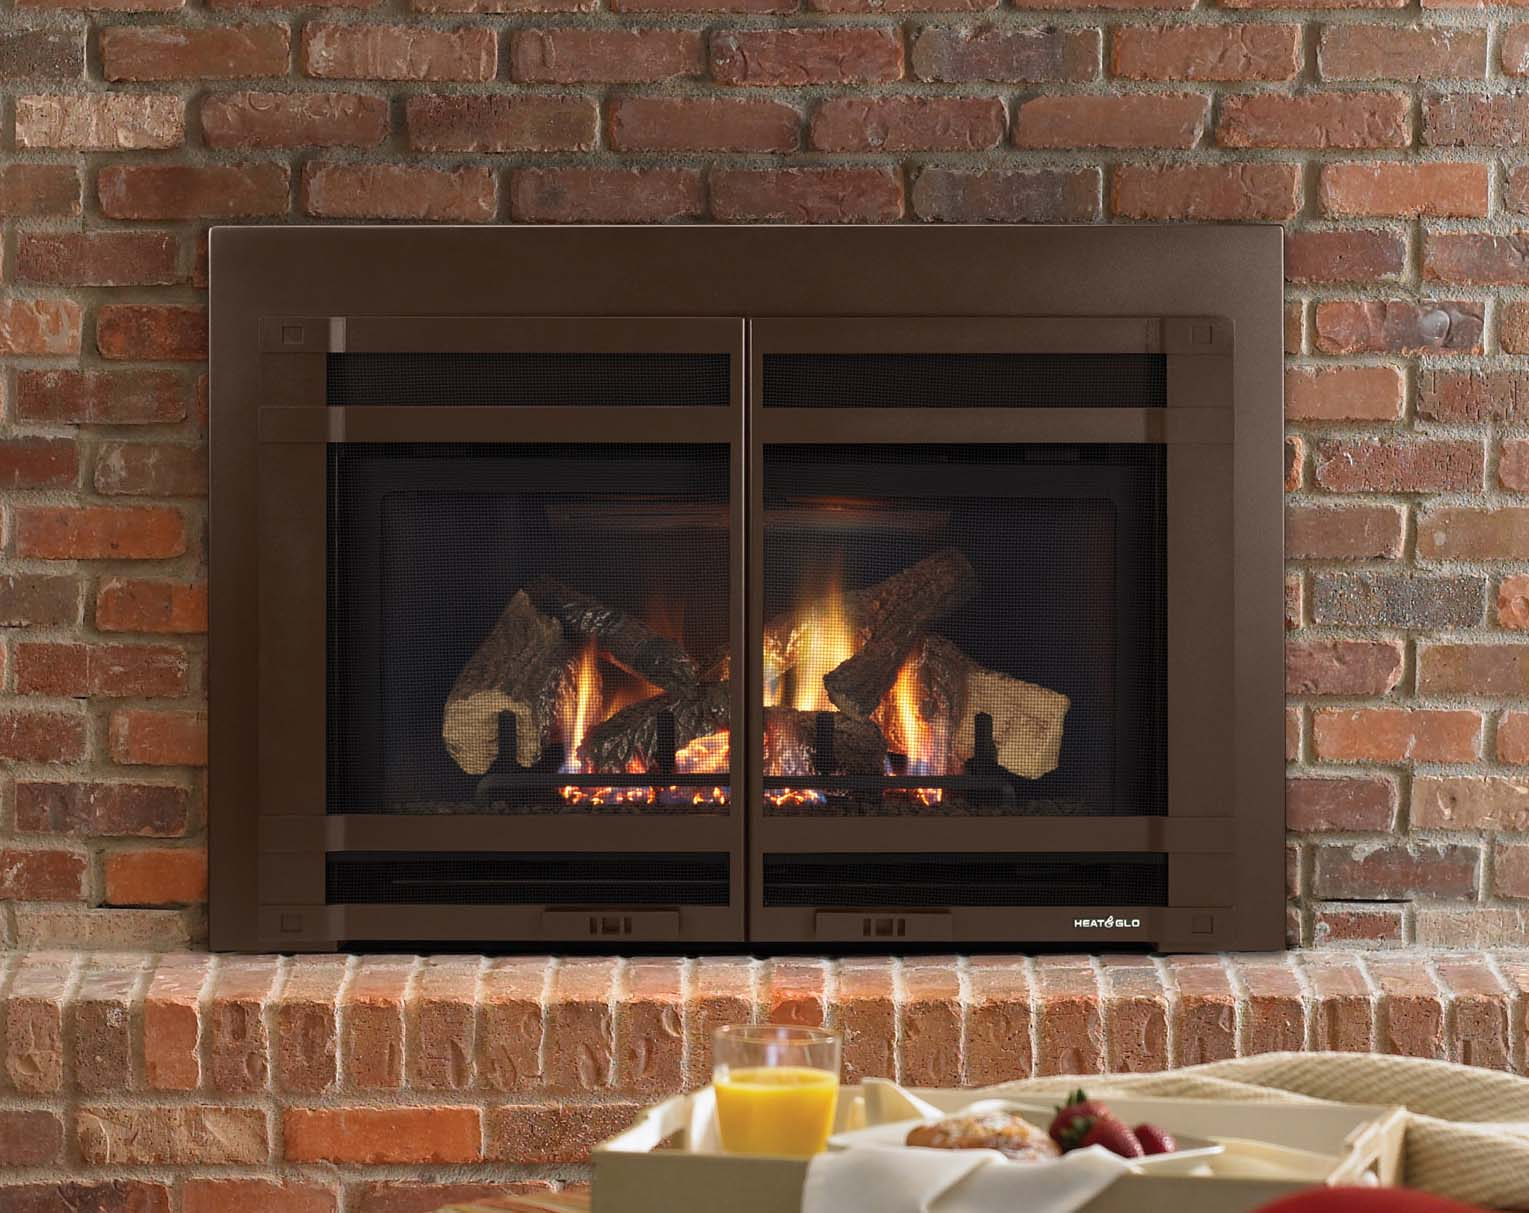 Hearth And Home Technologies Recalls Gas Fireplaces Stoves Inserts